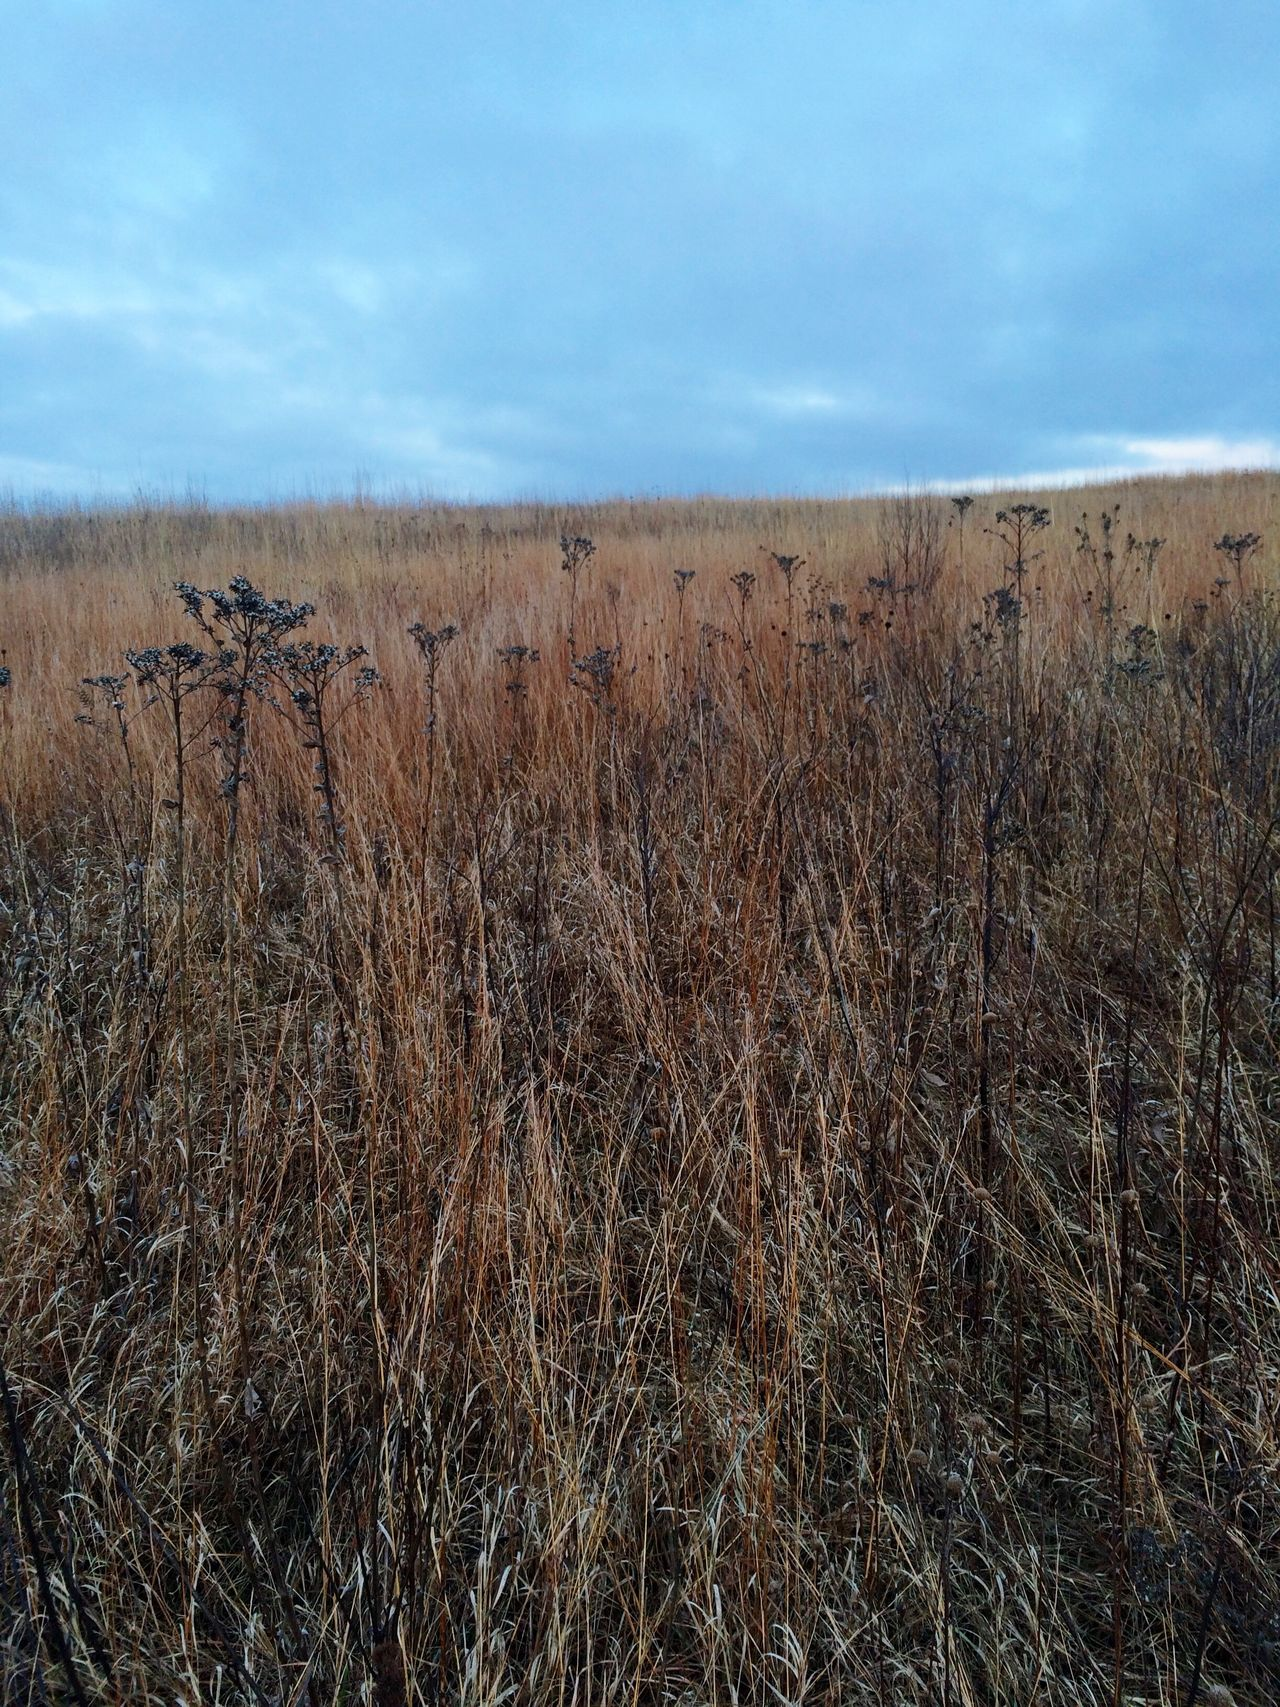 Winter Grassland in the American MidWest Nature Landscape Prarie Subtle Beauty